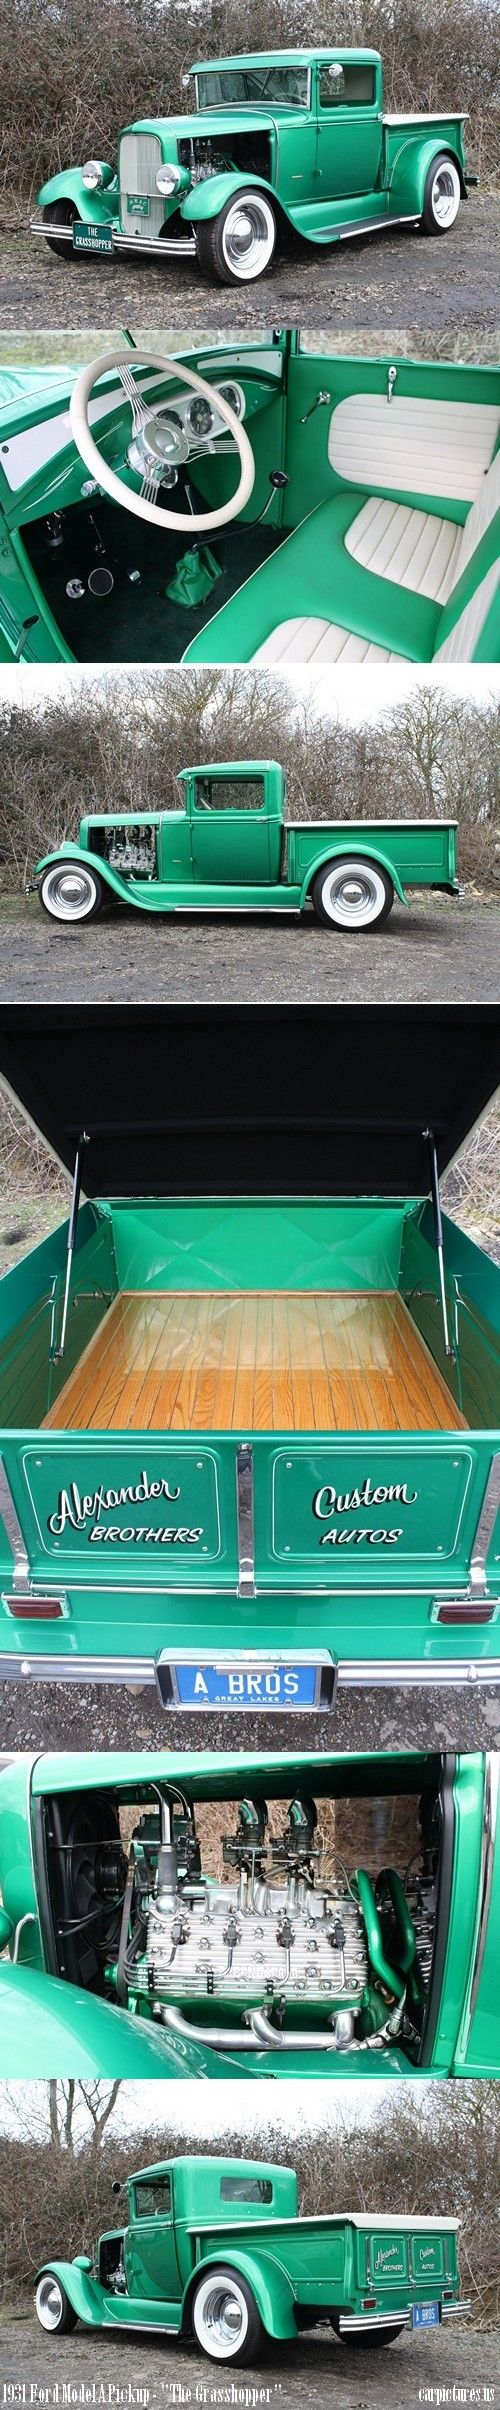 "1931 Ford Model A Custom Pickup –""The Grasshopper""  SealingAndExpungements.com 888-9-EXPUNGE (888-939-7864) Free evaluations, with easy payment terms. SEALING PAST MISTAKES.  OPENING FUTURE OPPORTUNITIES."